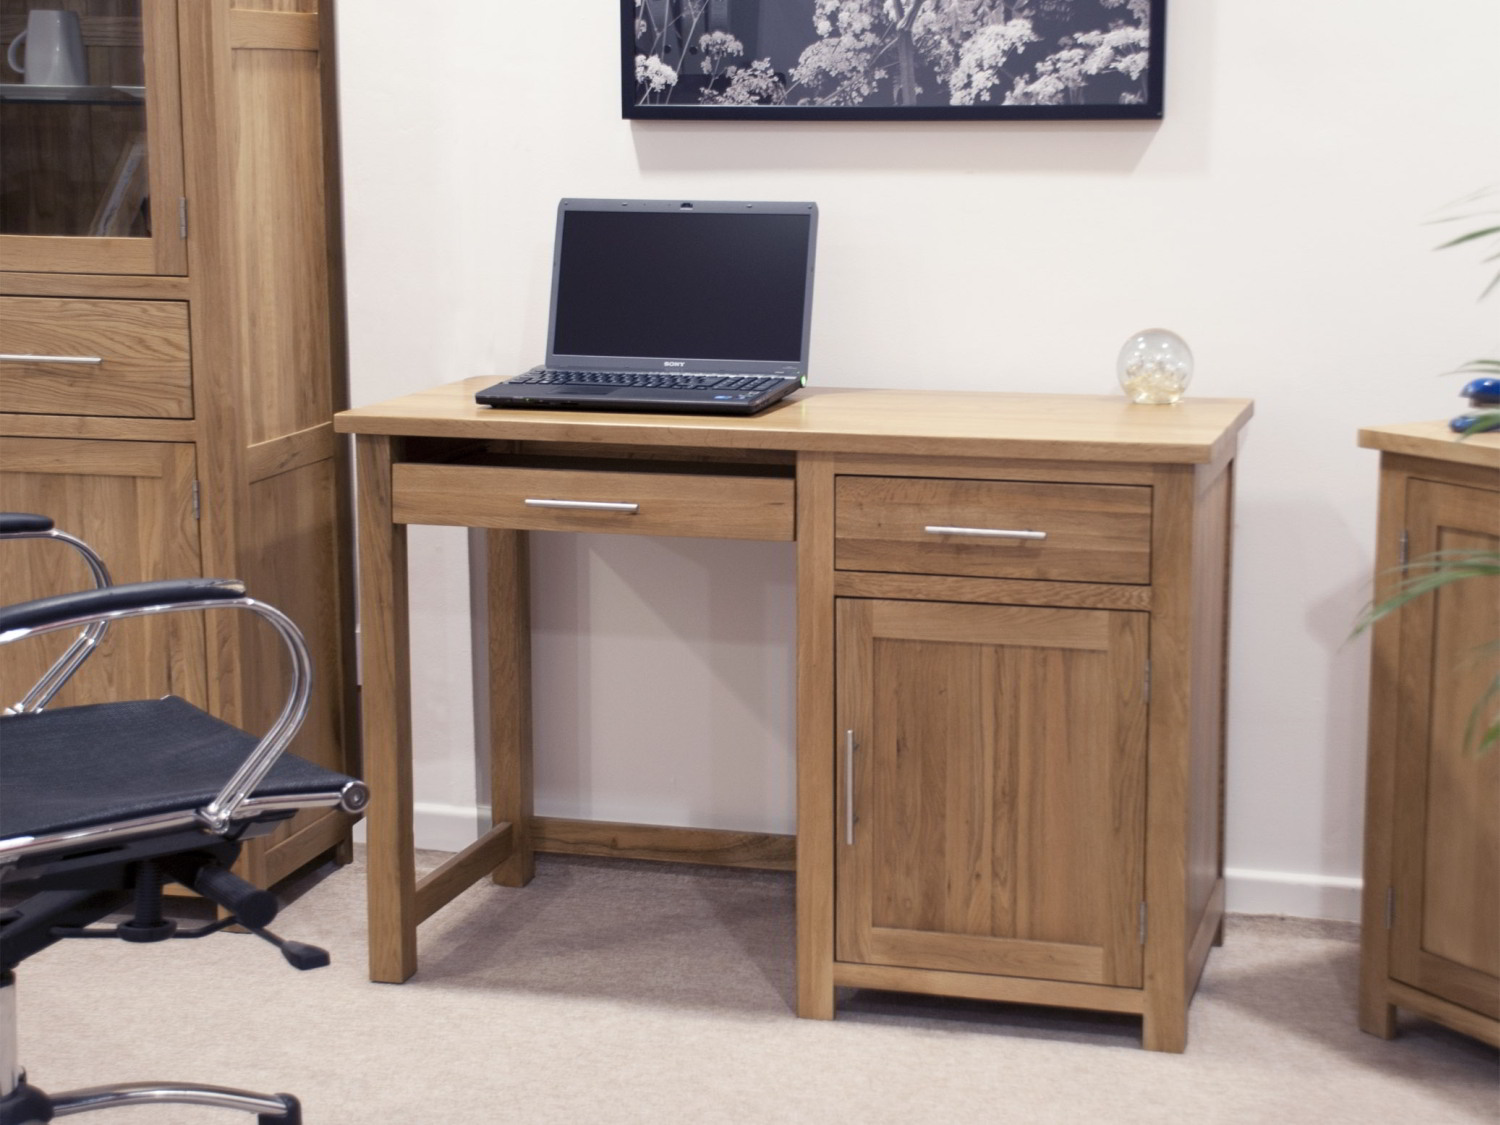 Eton Solid Oak Modern Furniture Small Office Pc Computer Desk Ebay